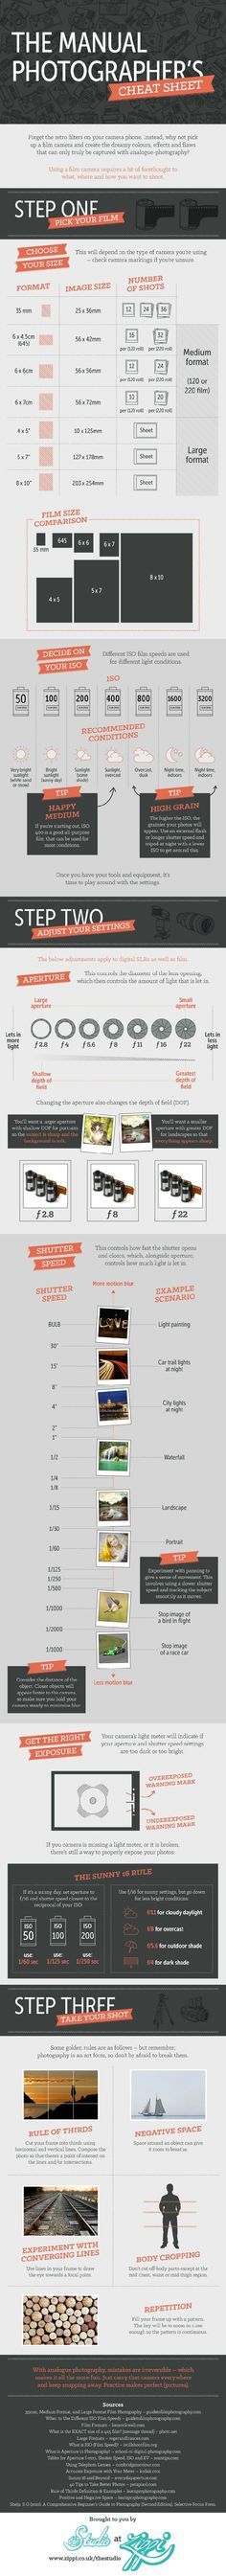 This infographic/cheat sheet from Zippi might be helpful for those looking to get out of auto mode and gaining more control over their cameras. While section 1 is much more for those shooting with film the rest is relevant for digital photography. We've i